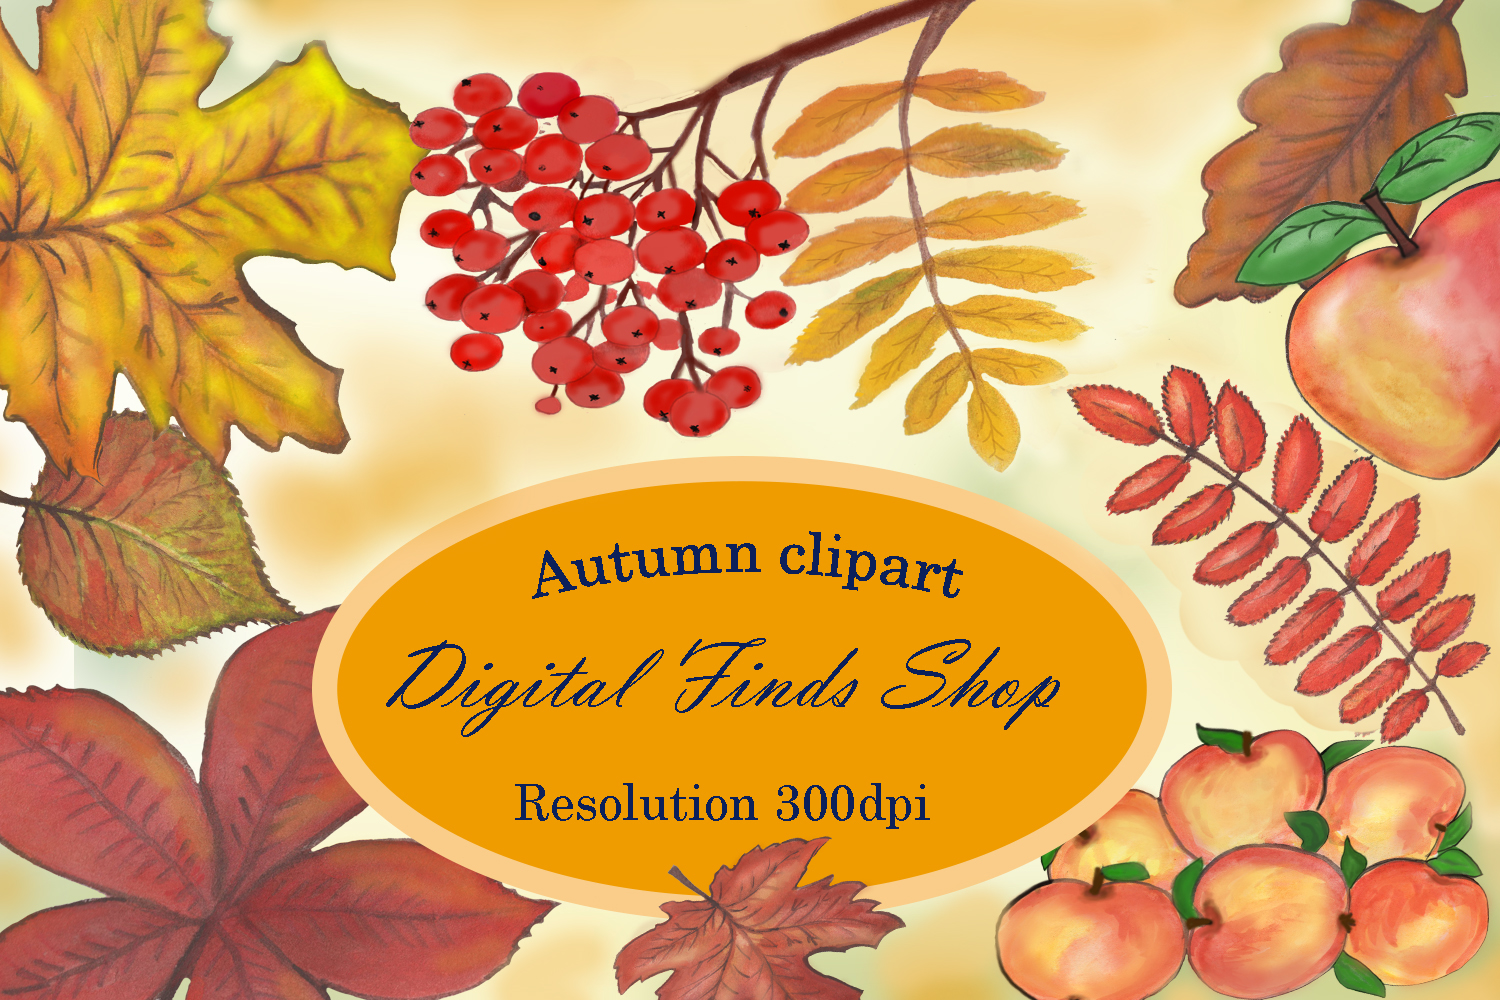 Fall leave Autumn clipart,watercolor fall clipart example image 1